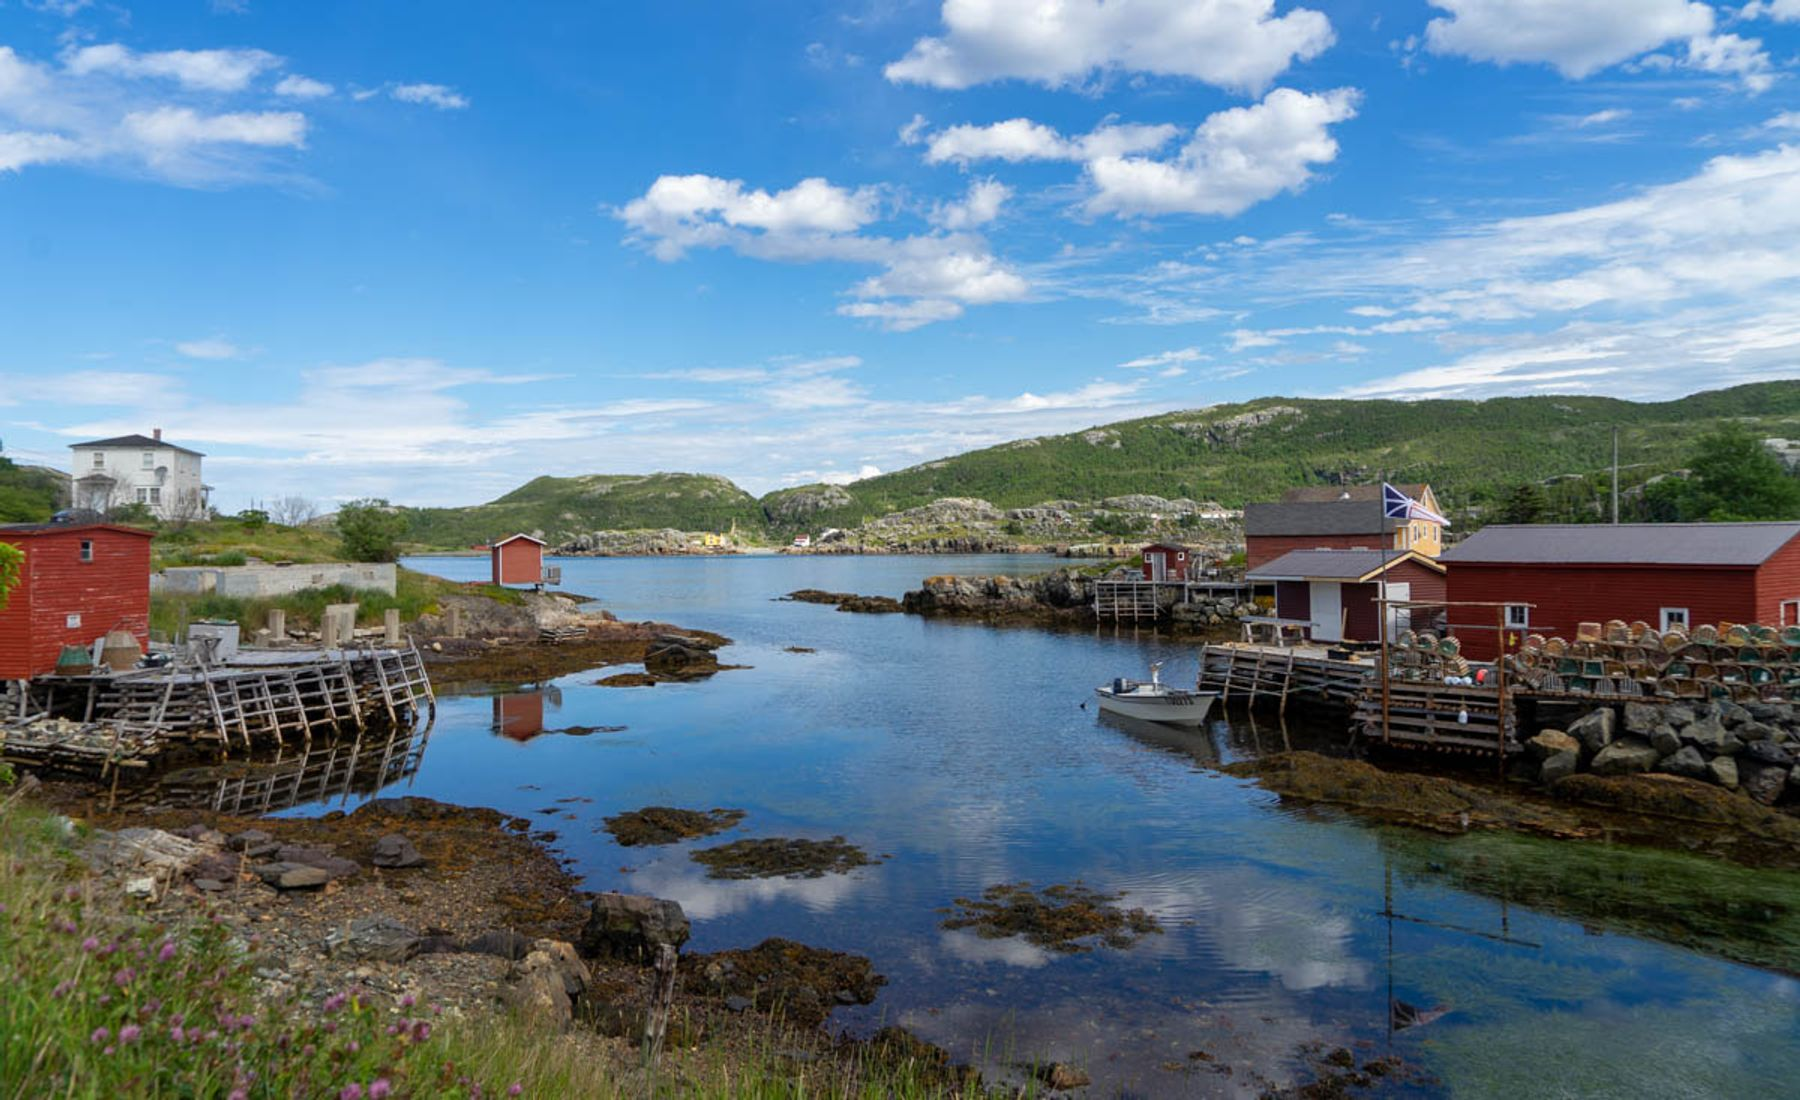 tiny houses by the fishing docks in Eastport, central Newfoundland